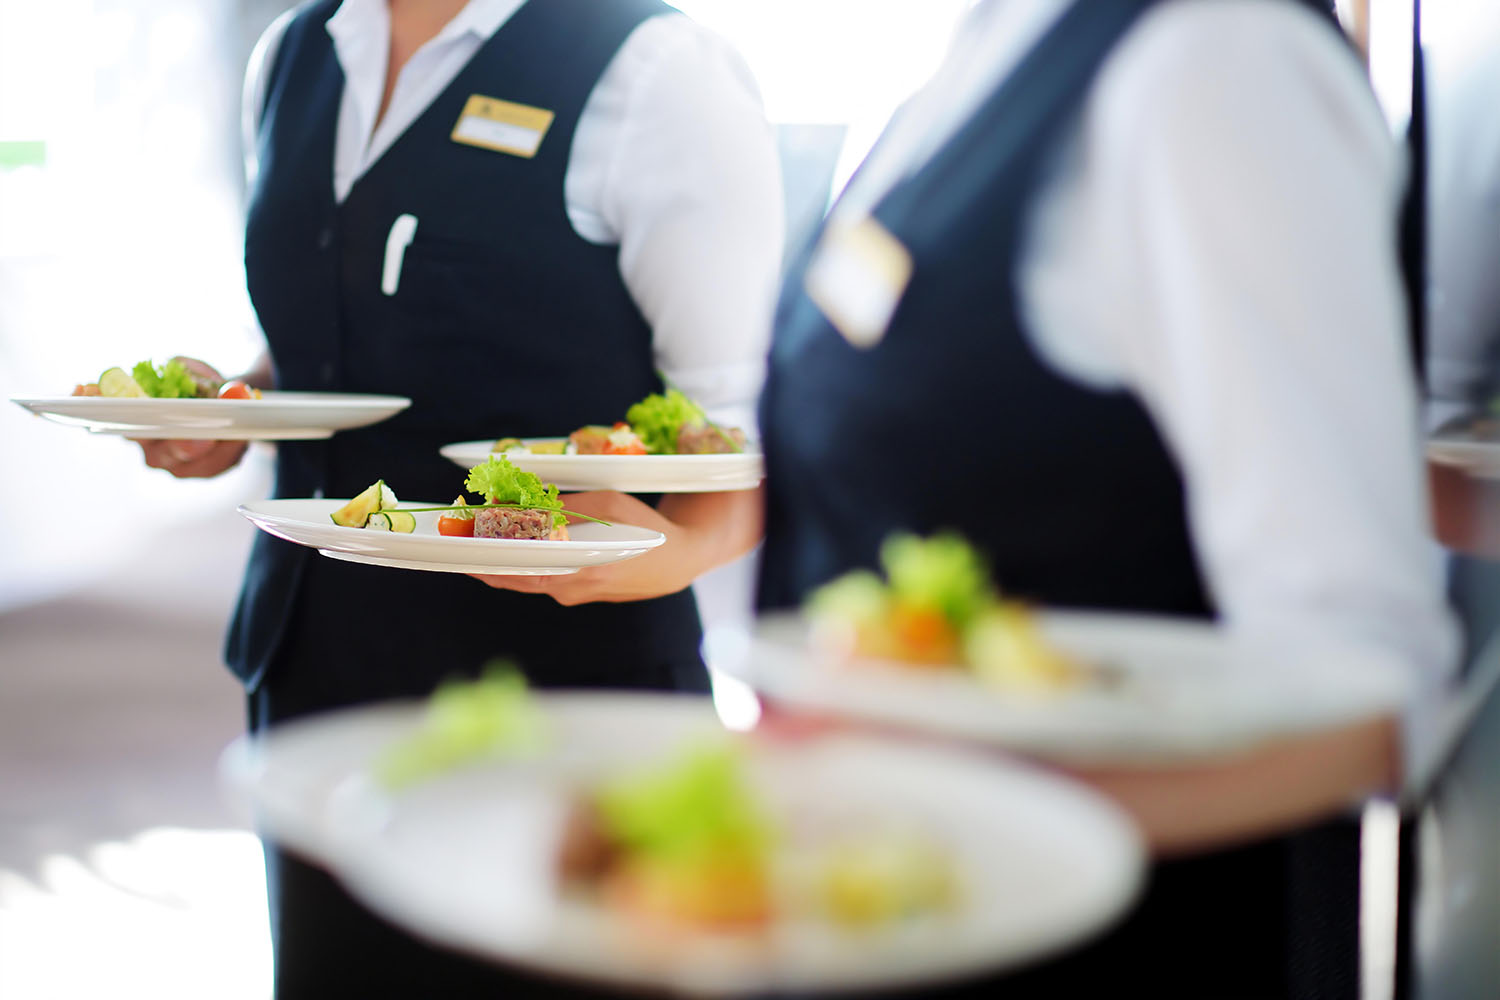 Two servers delivering plates of food to the table.